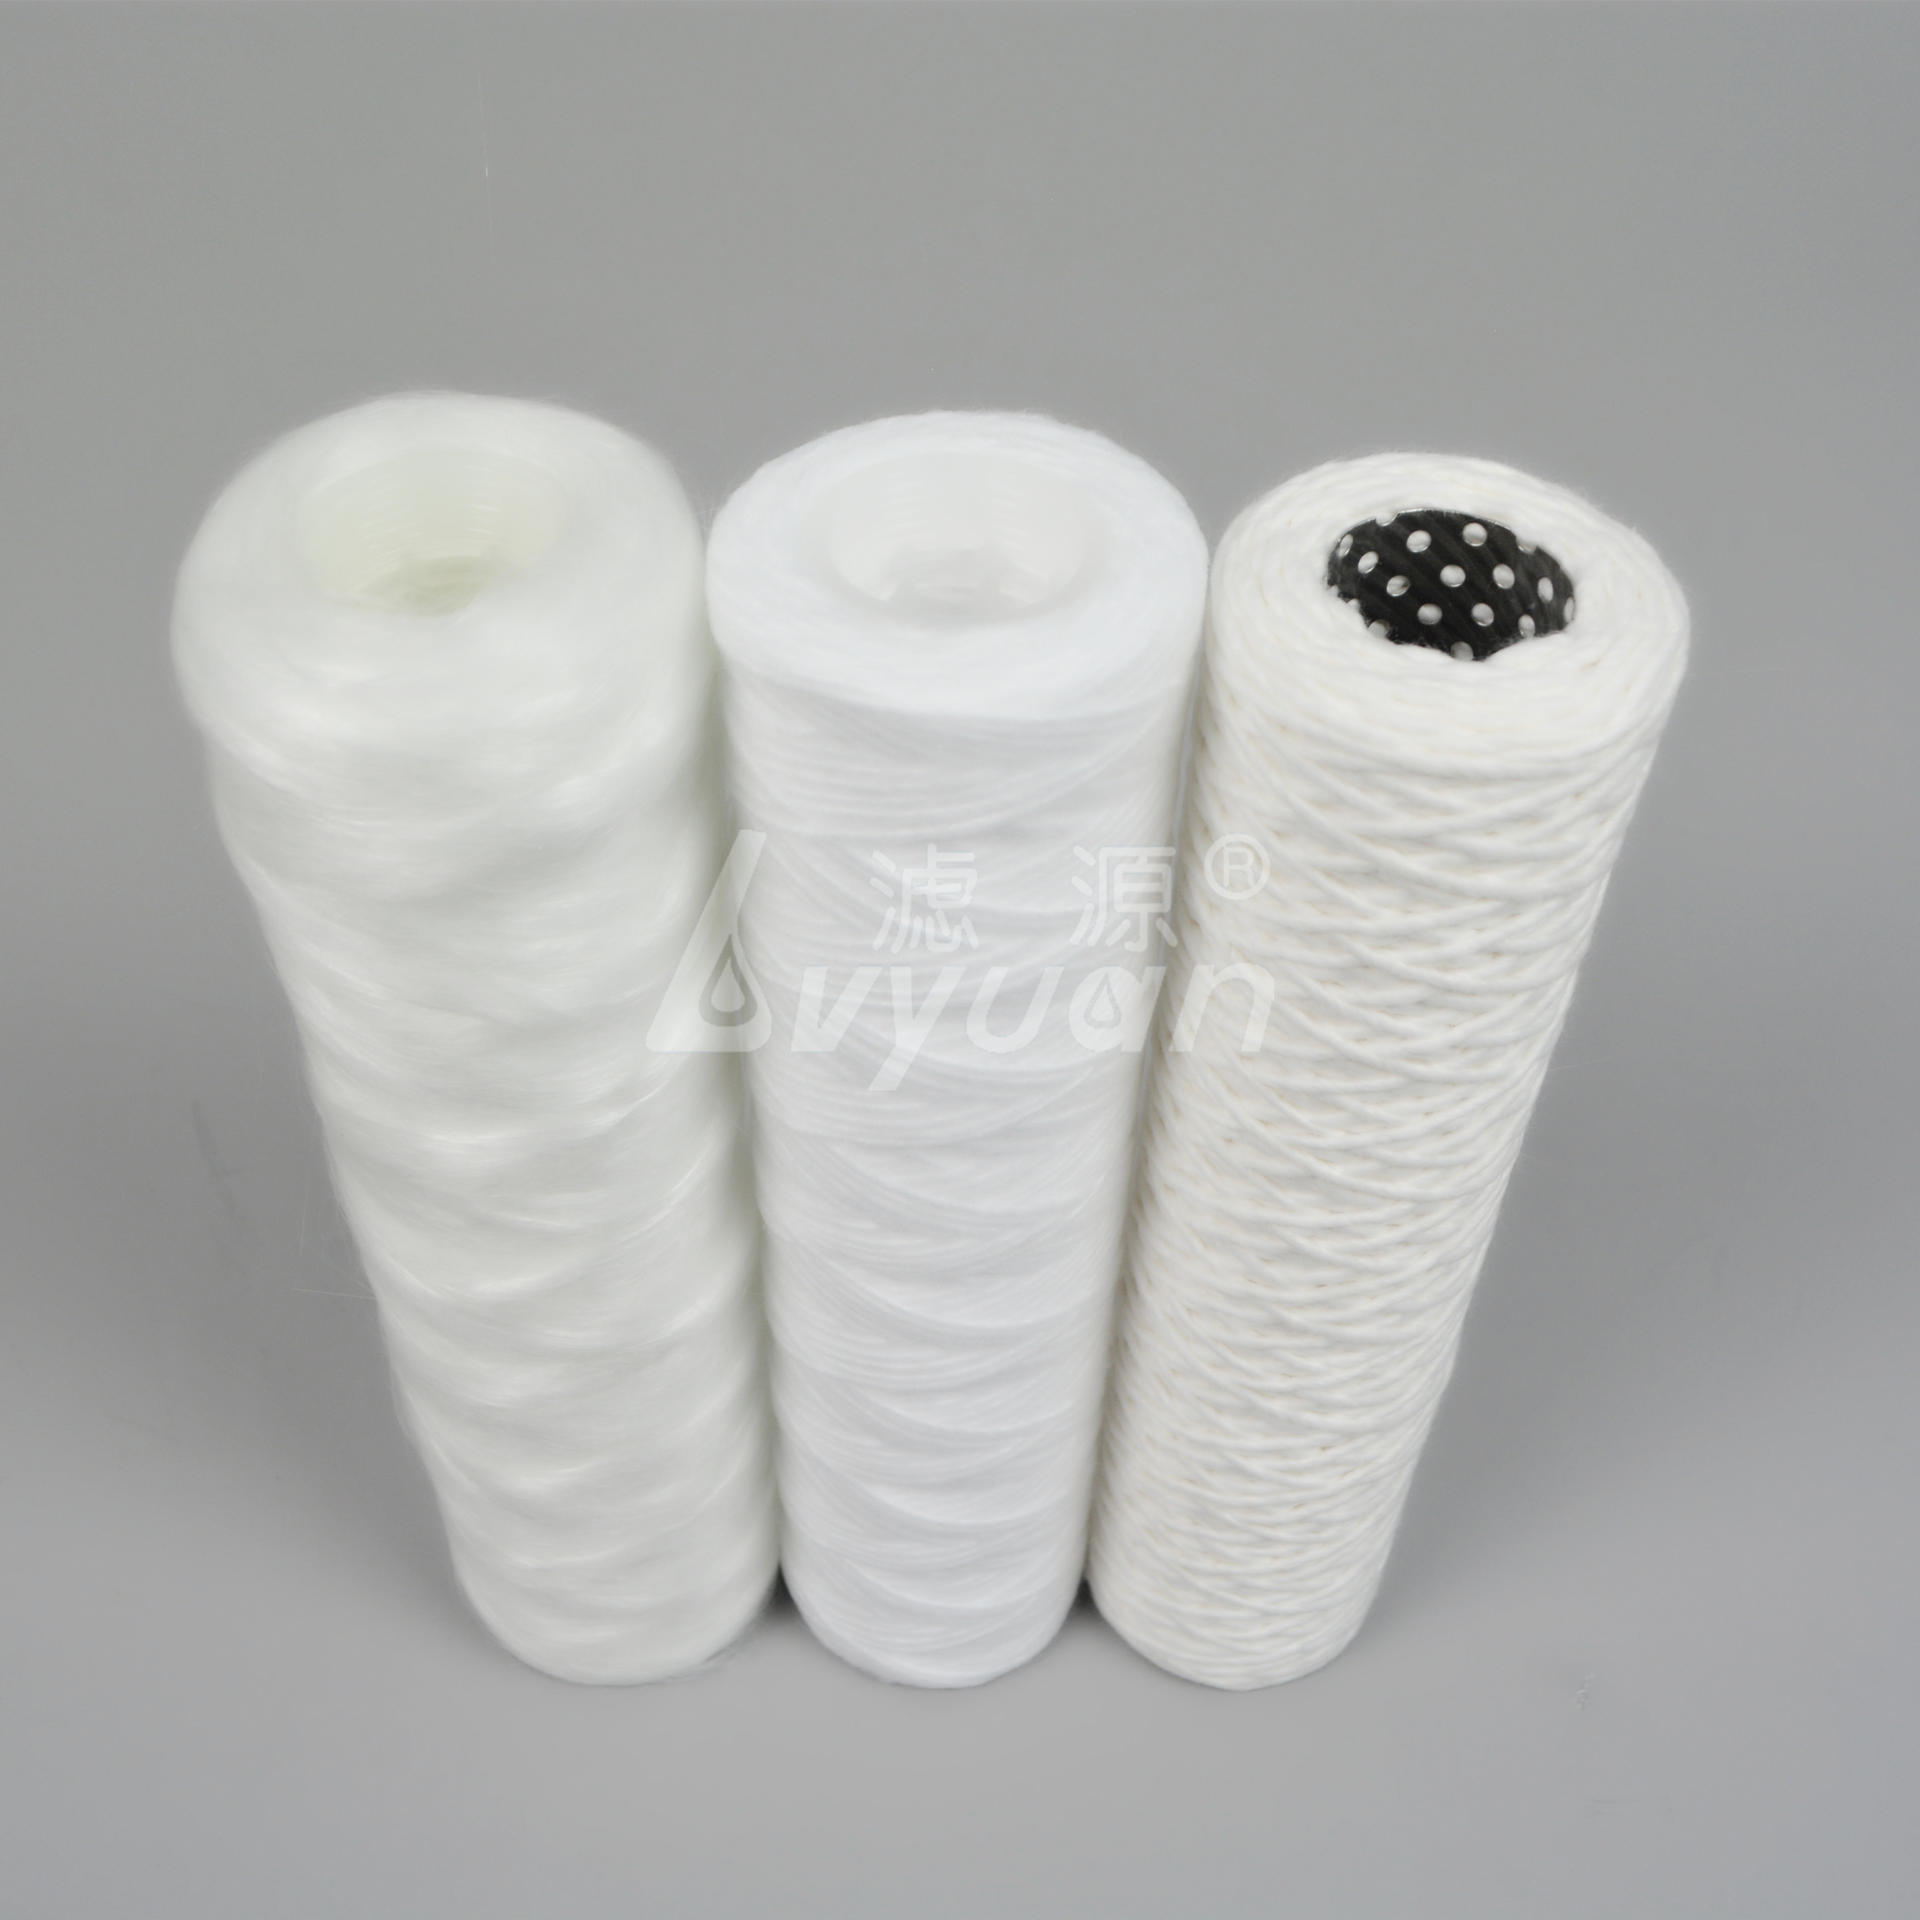 pp string wound filter cartridge/spun polypropylene water cartridge customized length 10 20 30 40 inch for pre filtration